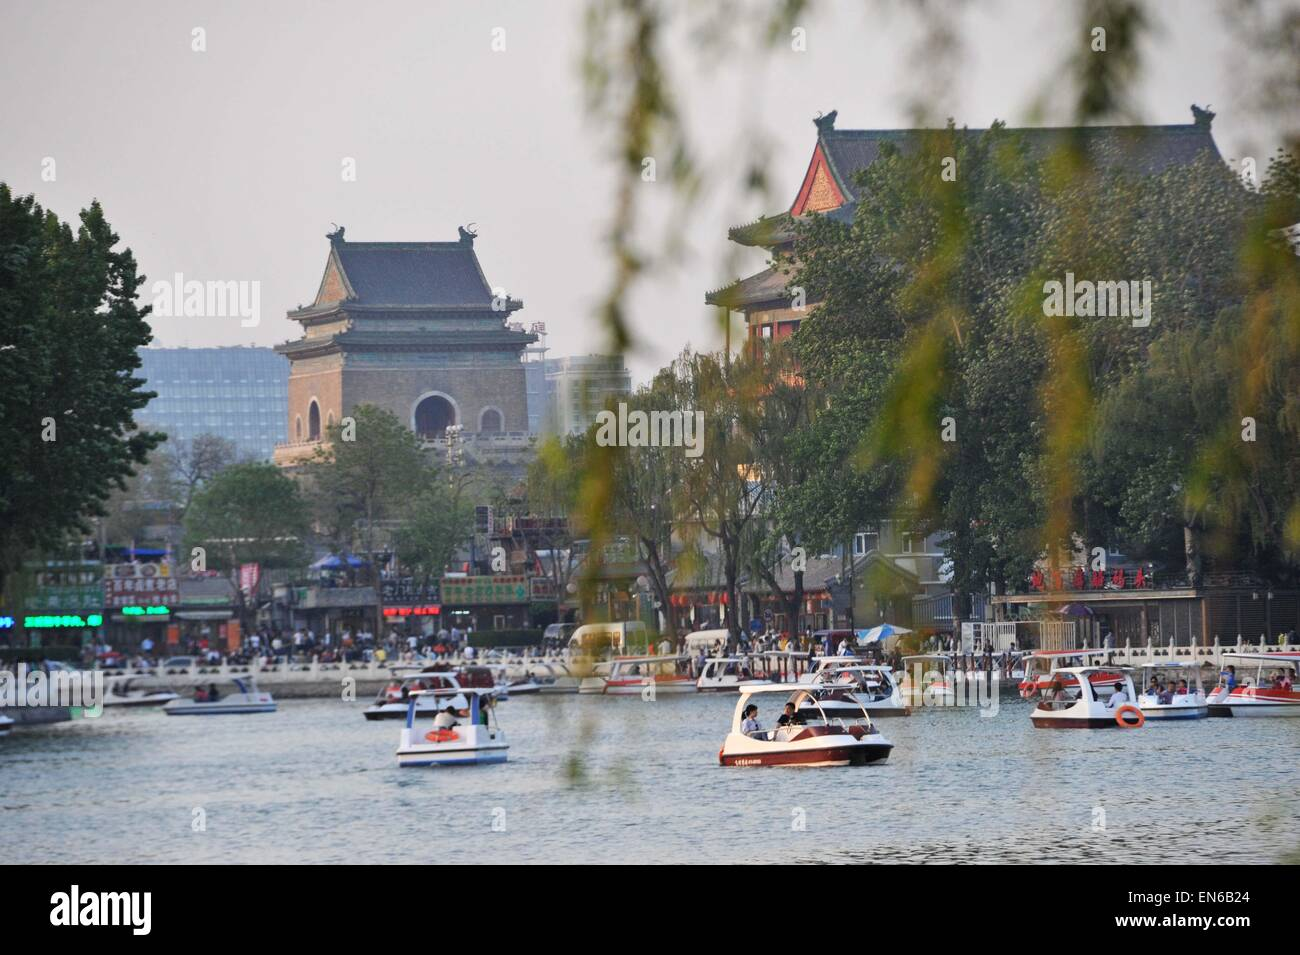 April 25, 2015 - Beijing, Beijing, CHN - Beijing, CHINA - APR 25 2015: (EDITORIAL USE ONLY. CHINA OUT) Shichahai - Stock Image